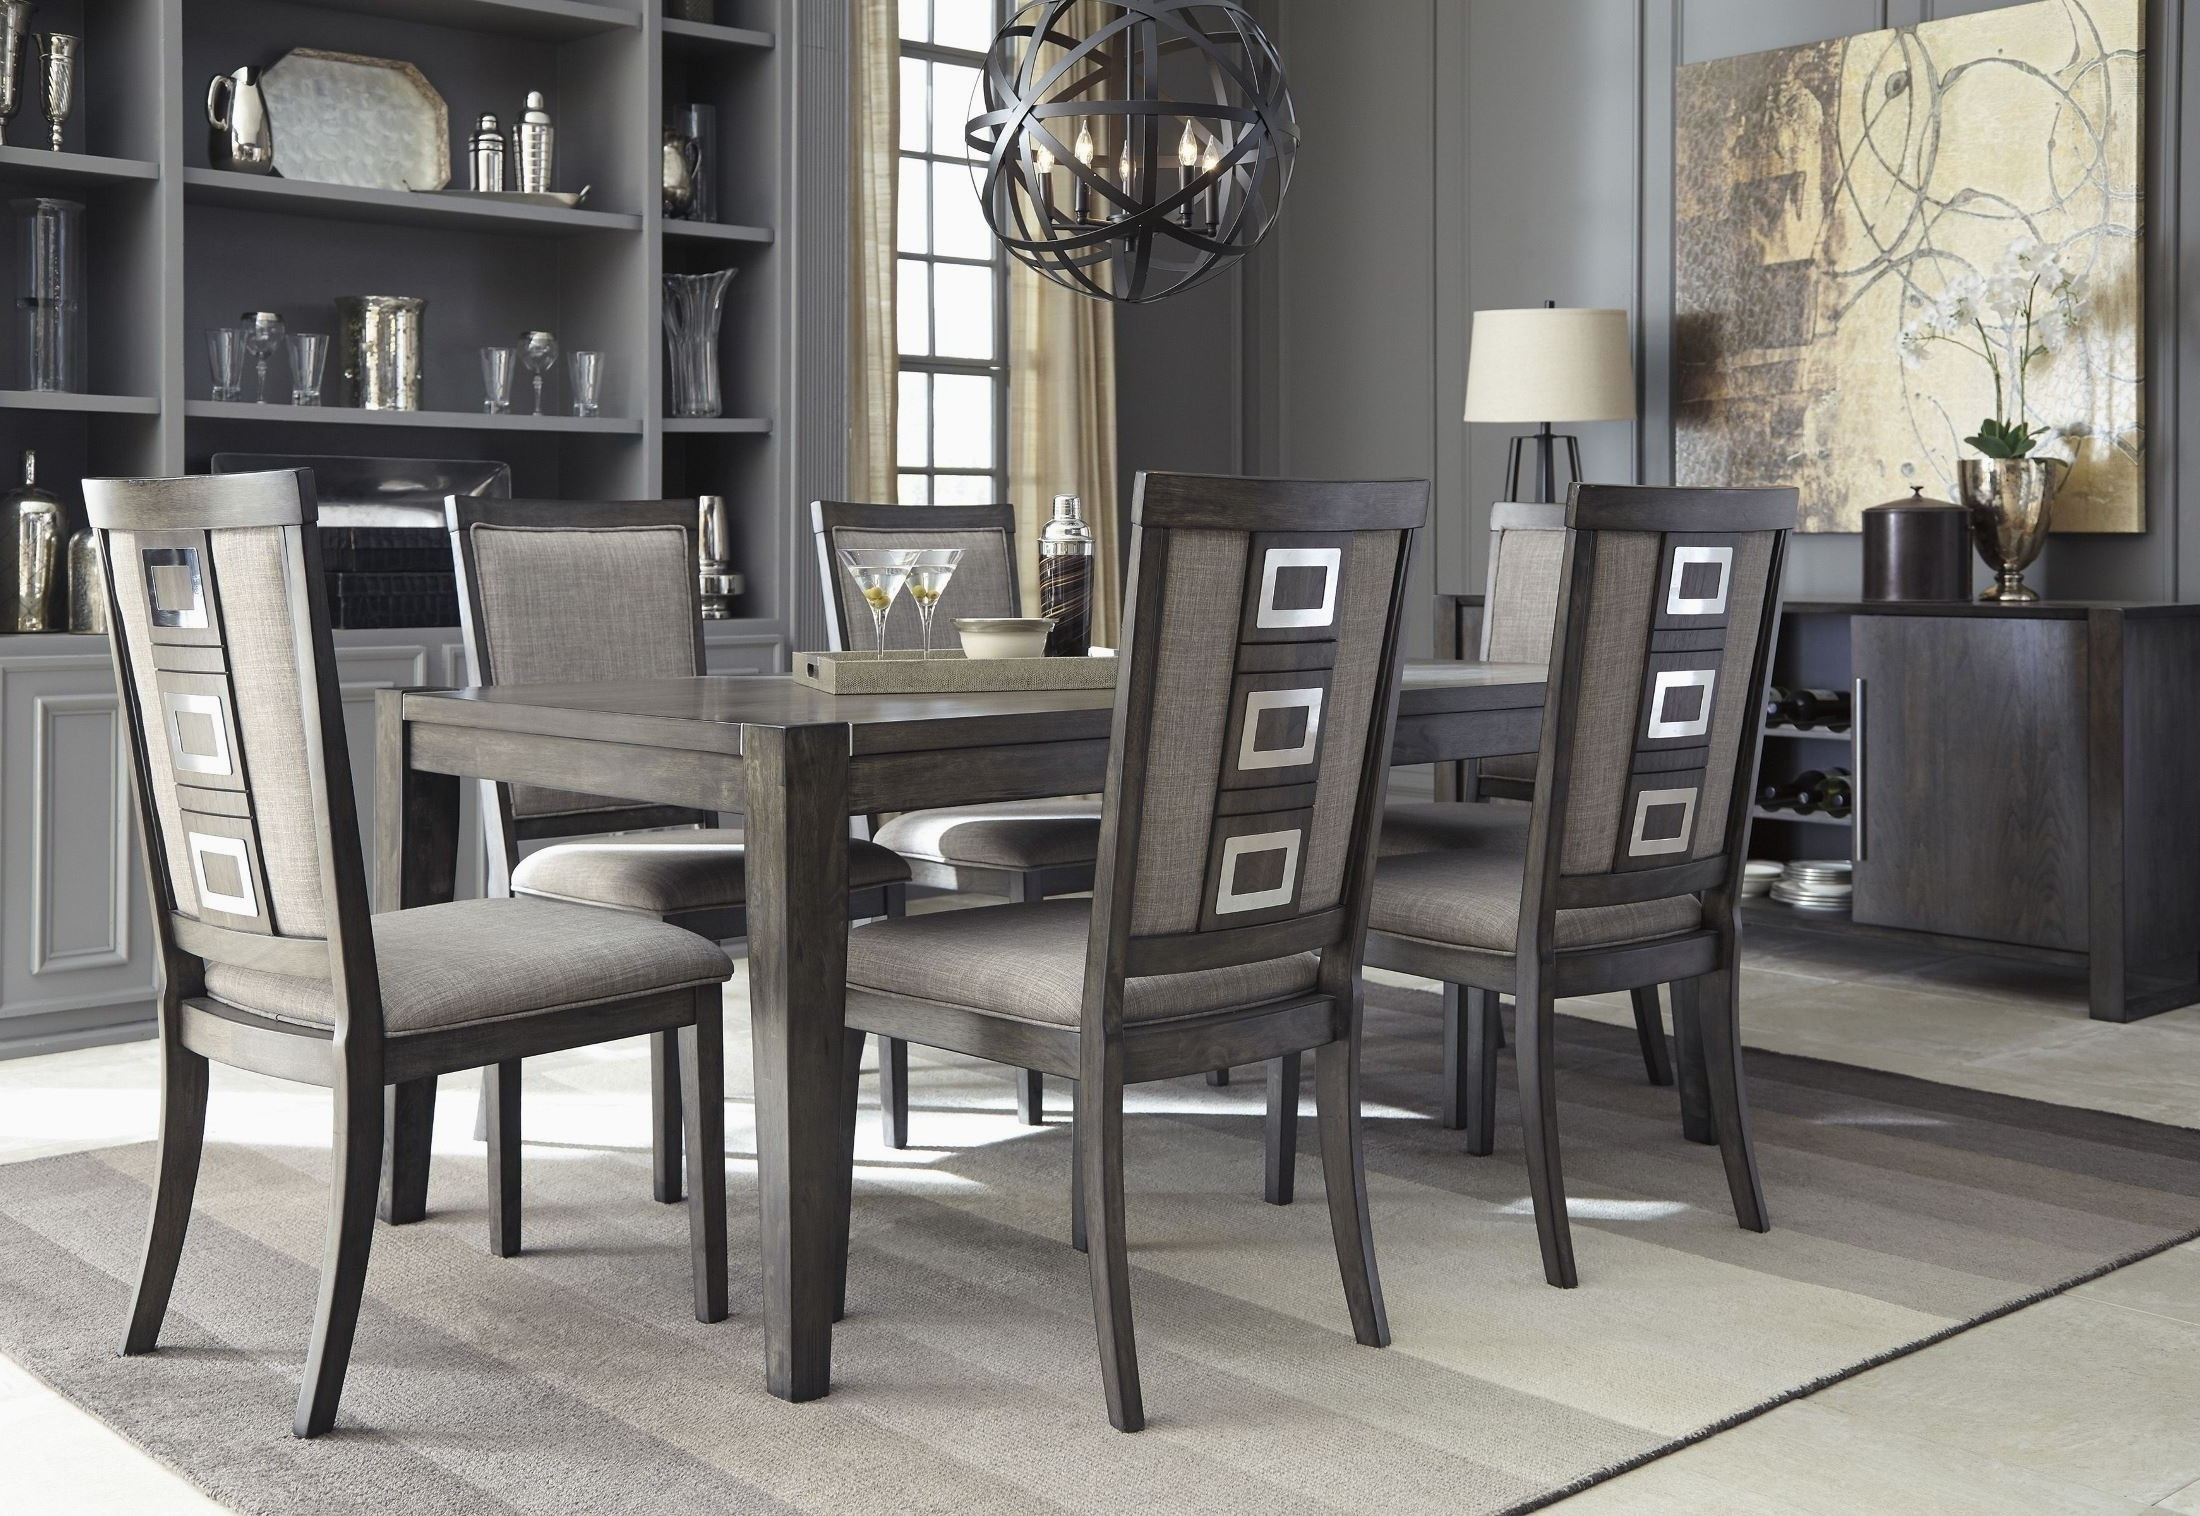 Extendable Dining Table Sets regarding Best and Newest Extendable Dining Table Set With 6 Chairs Lovely 36 Beneficial